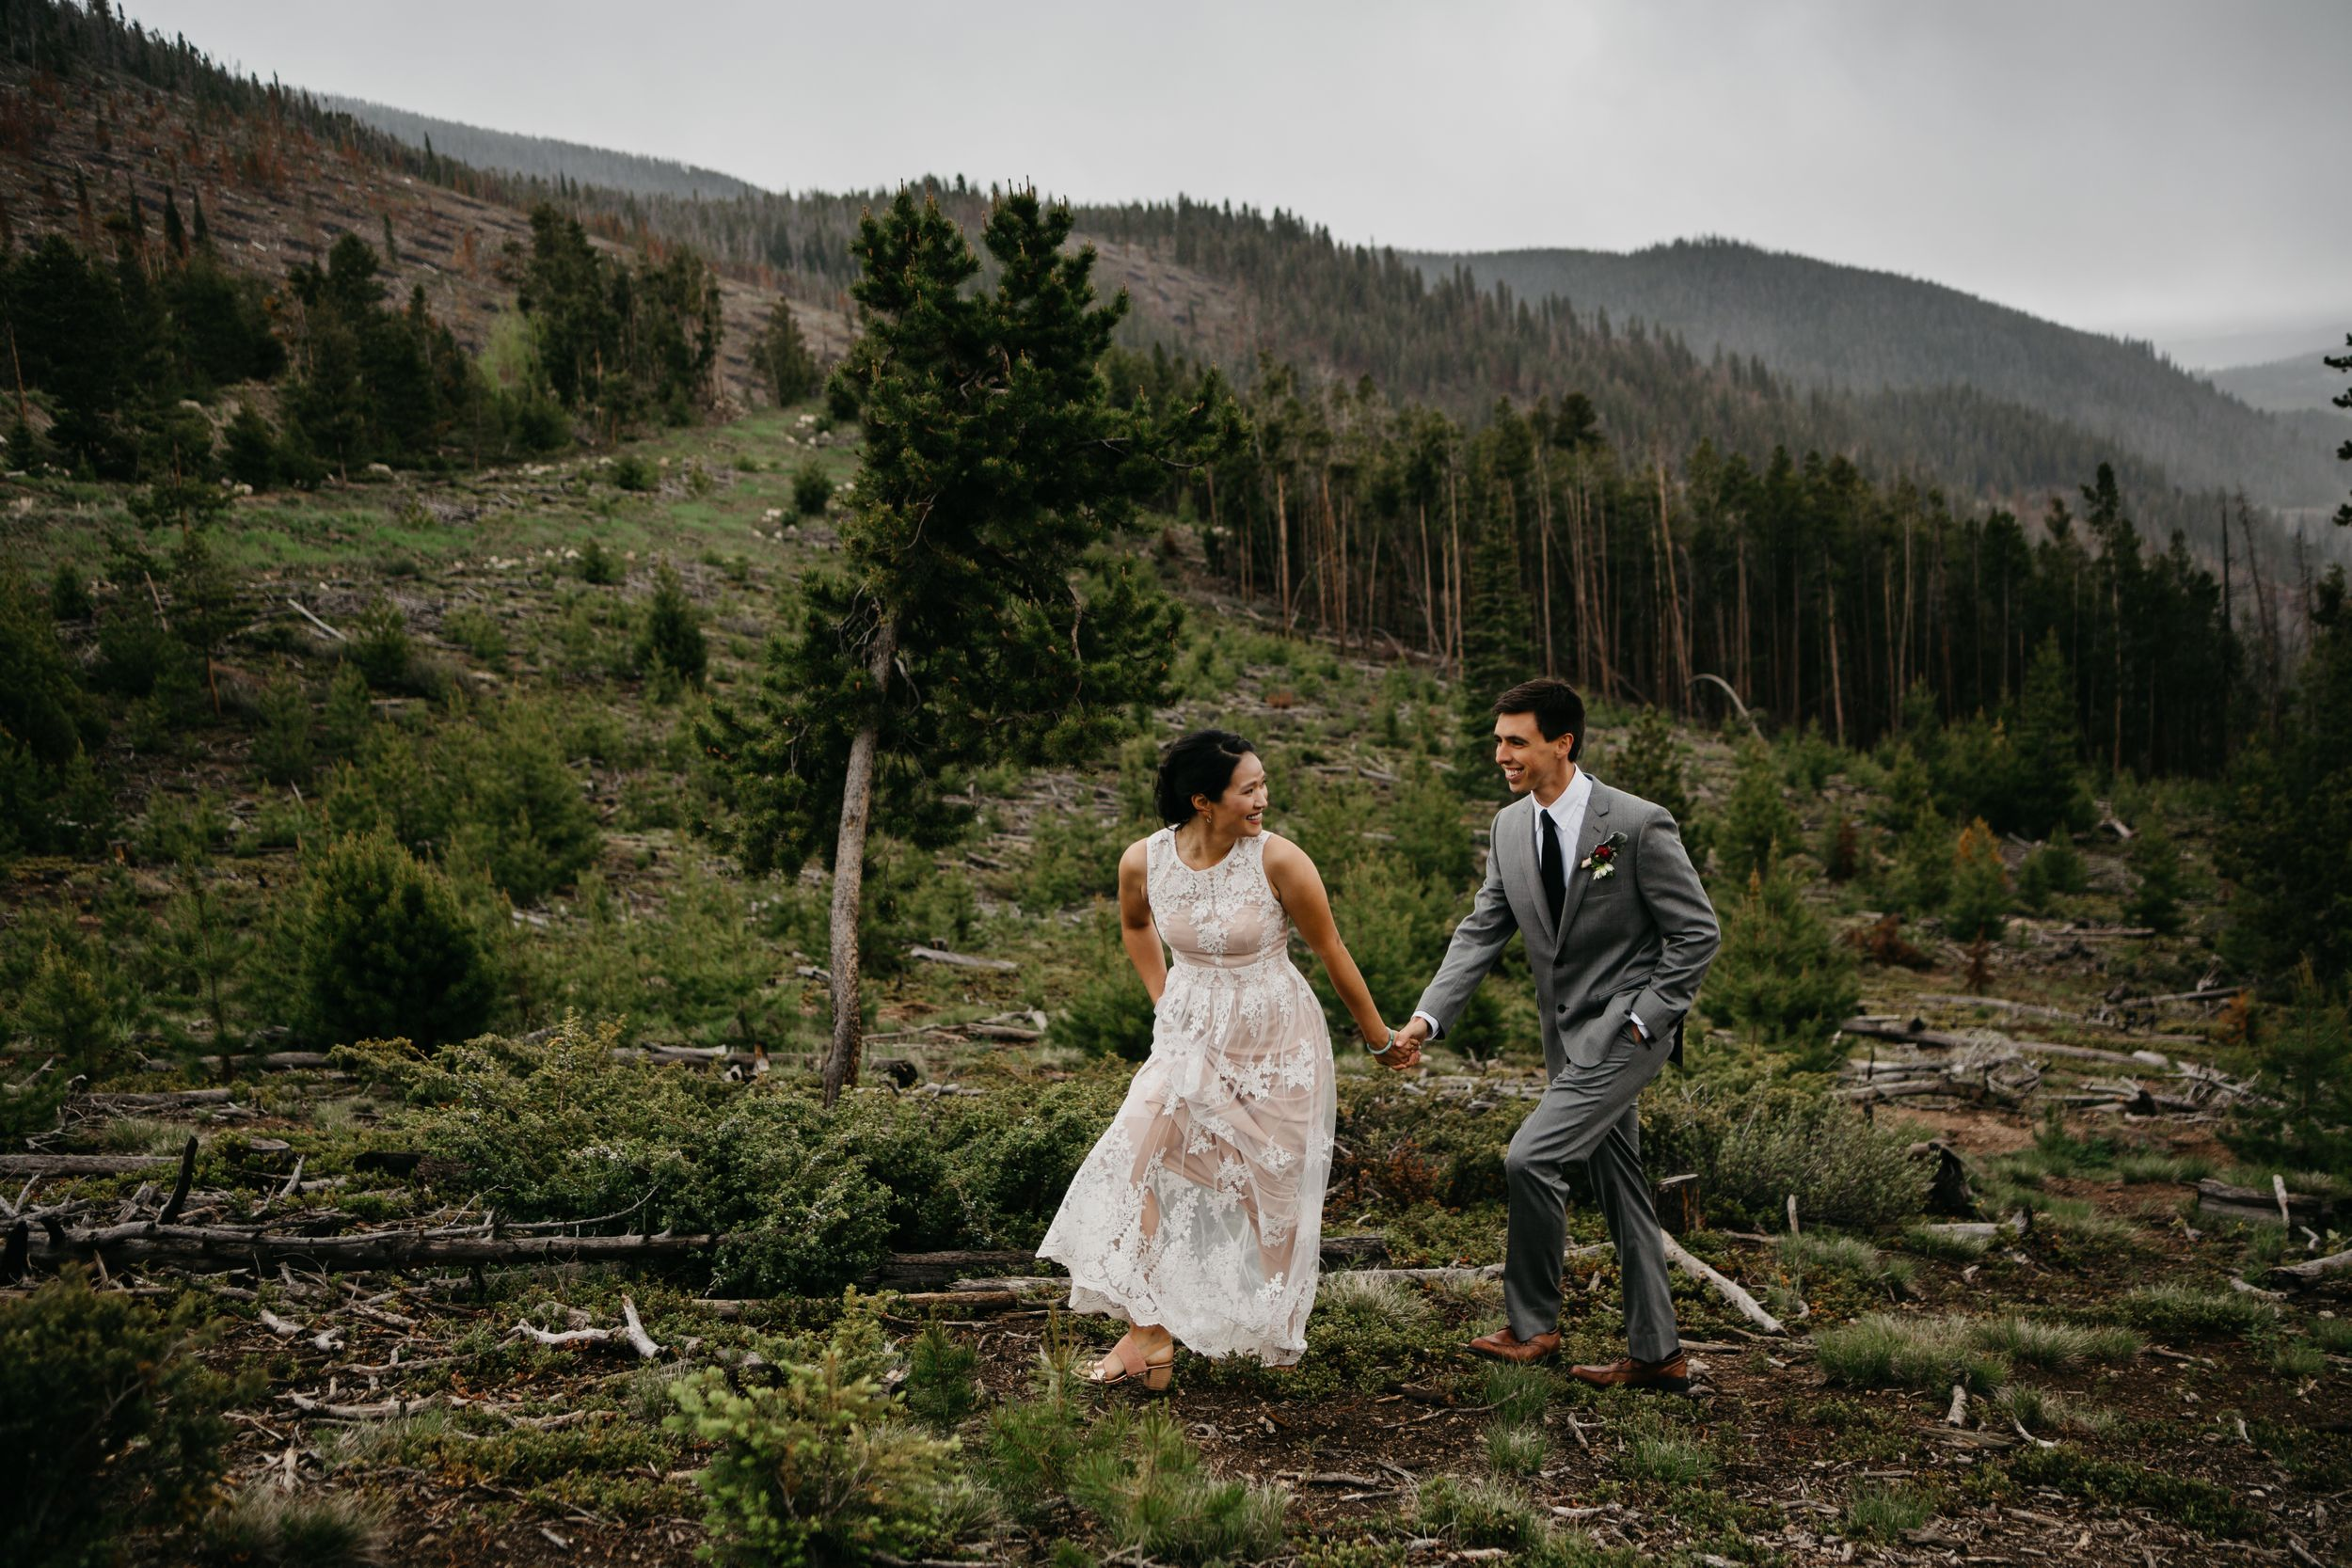 Rainy Elopement in Breckenridge Colorado Moody Portraits